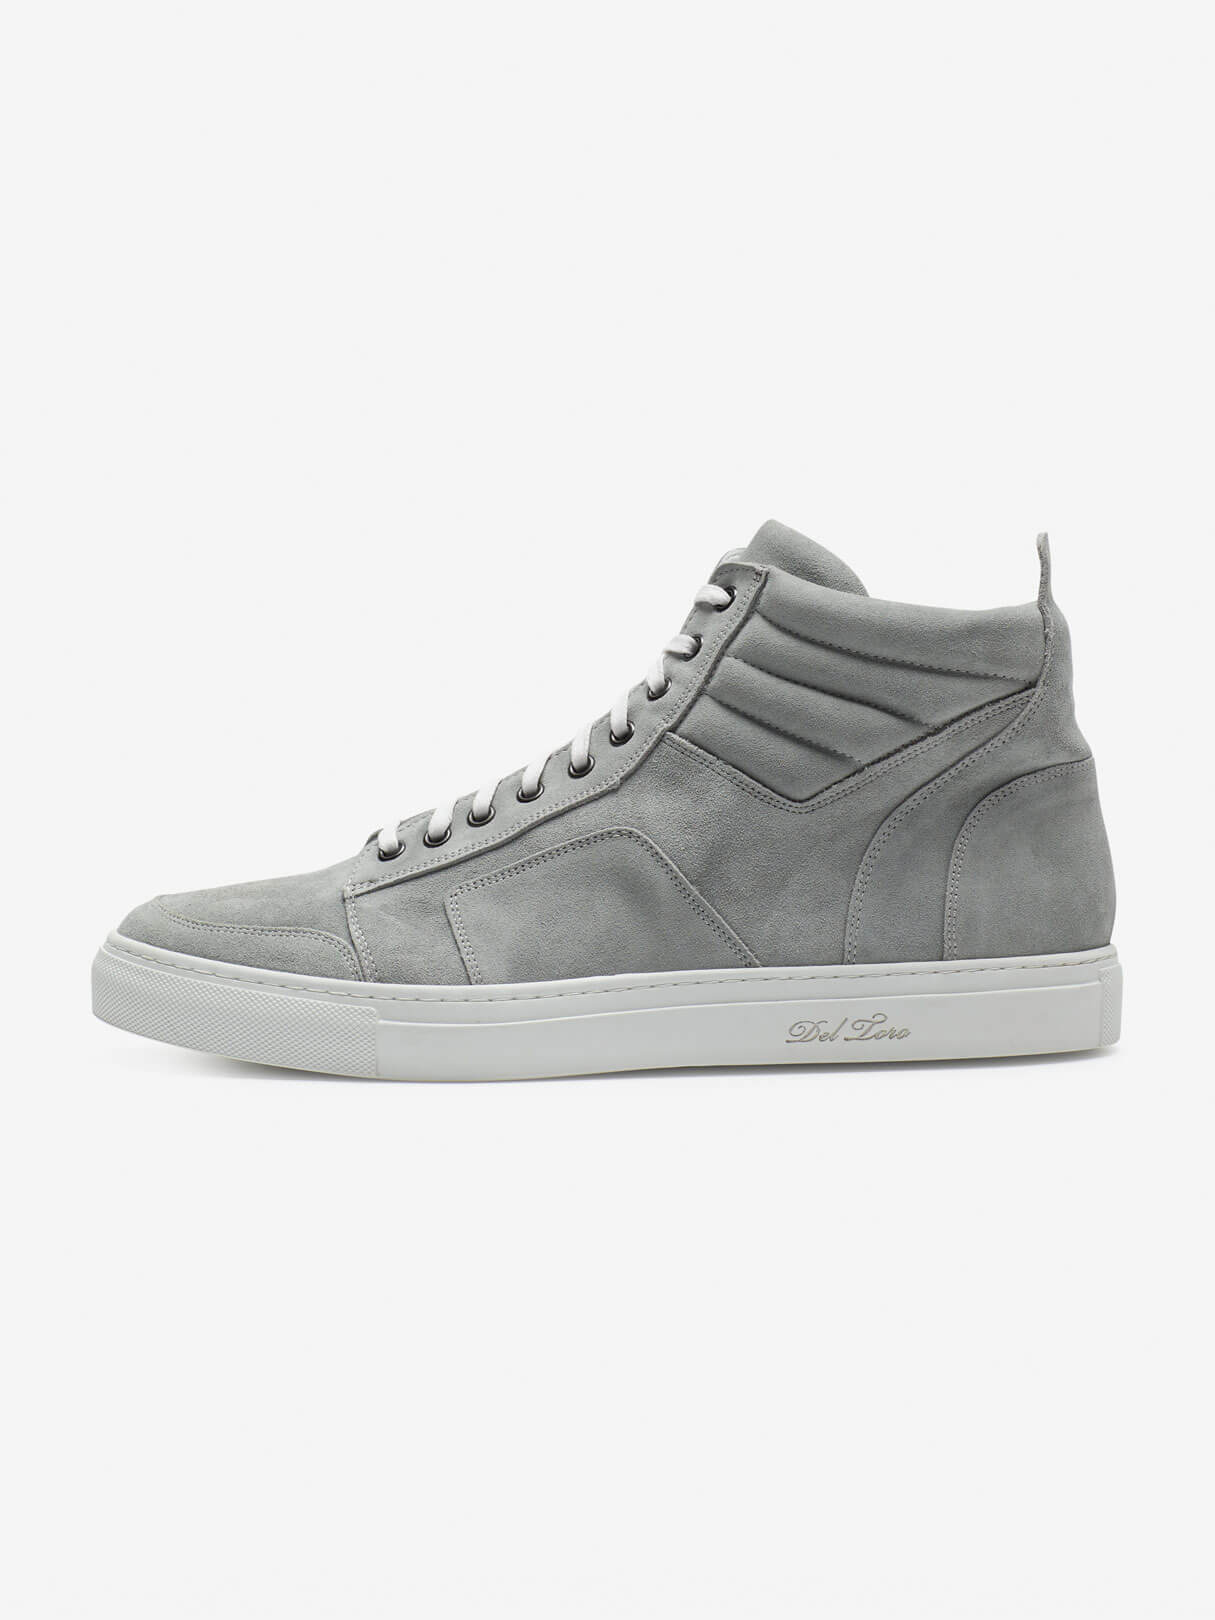 Del Toro Boxing Sneaker Grey Hero